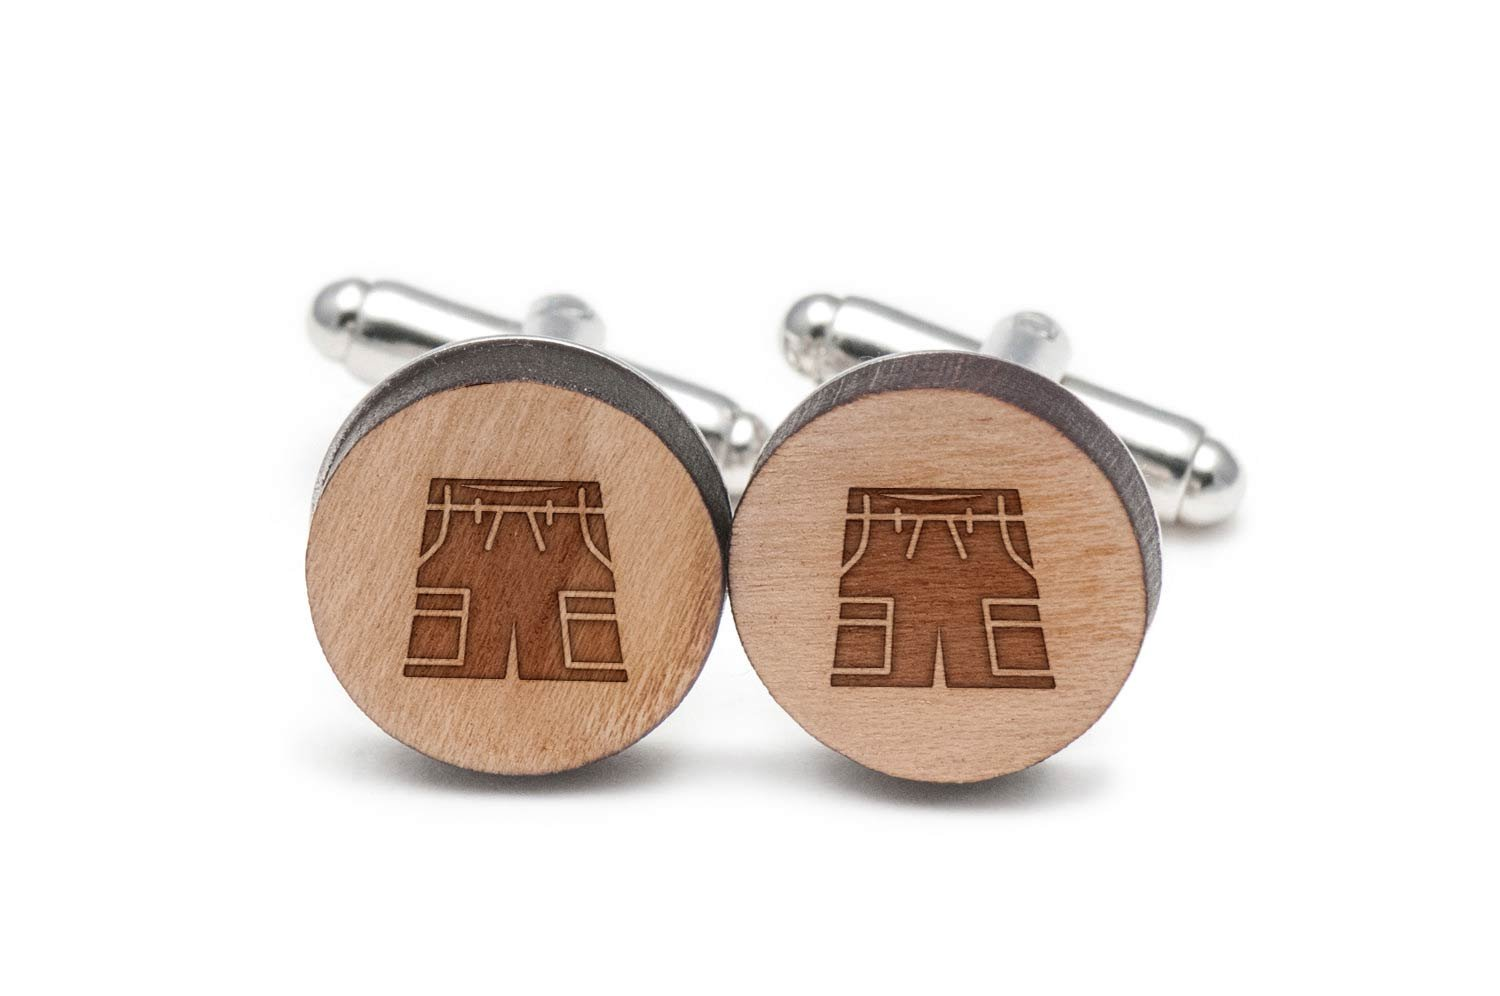 Cargo Shorts Cufflinks, Wood Cufflinks Hand Made In The Usa